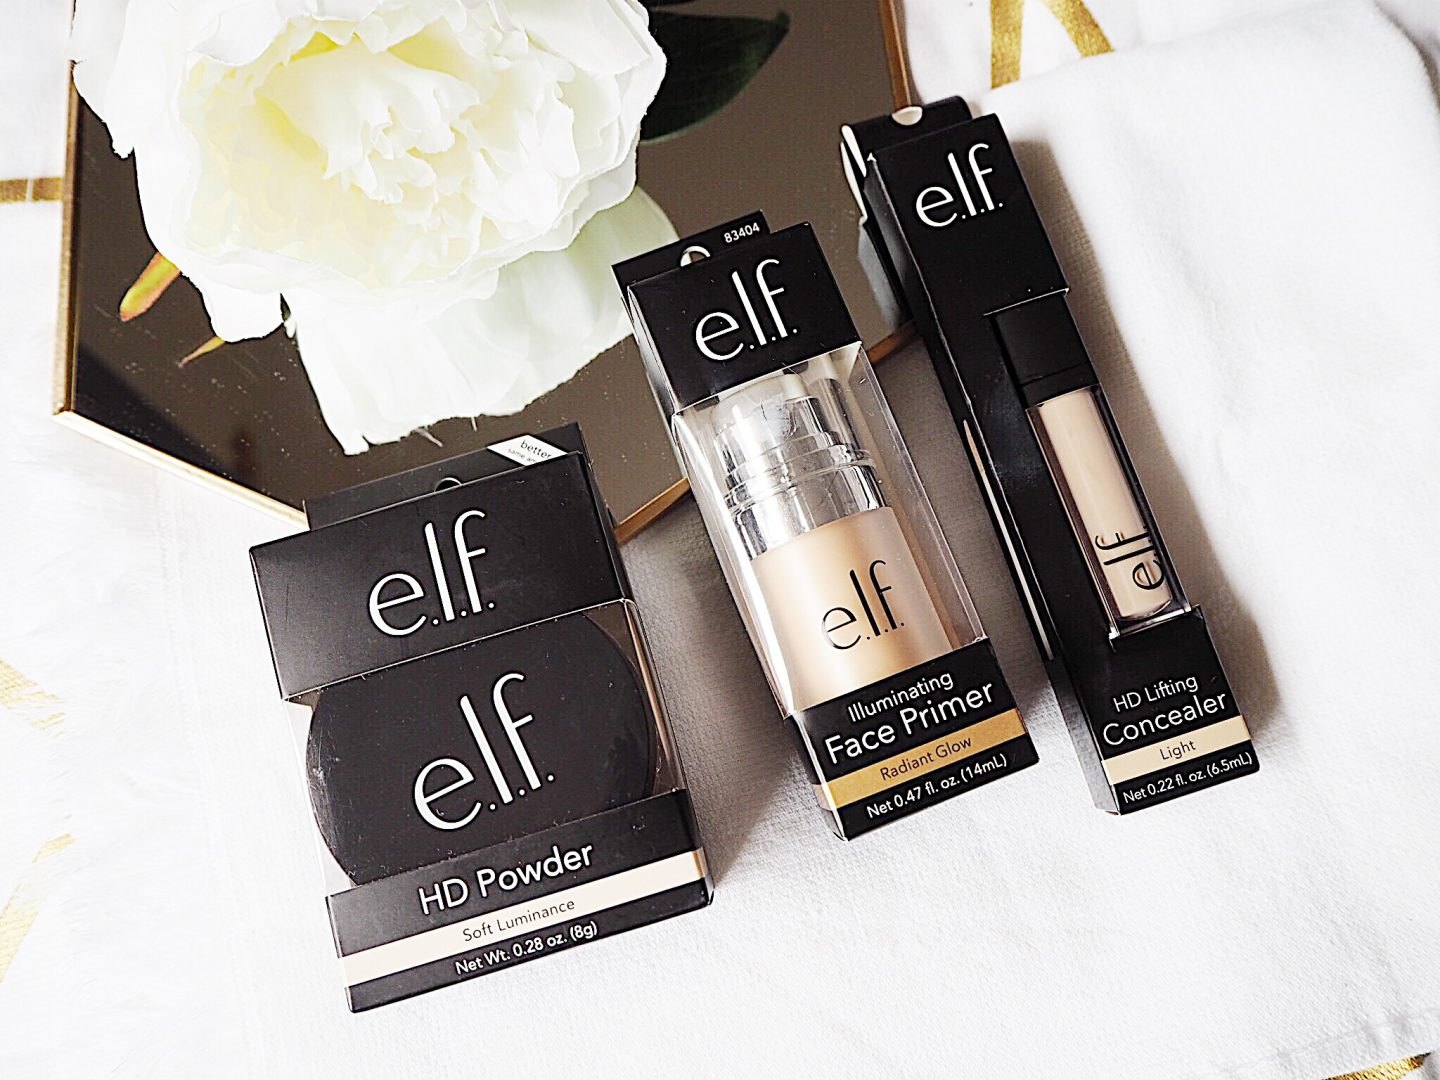 ELF Cosmetics : Most Disappointing Products?